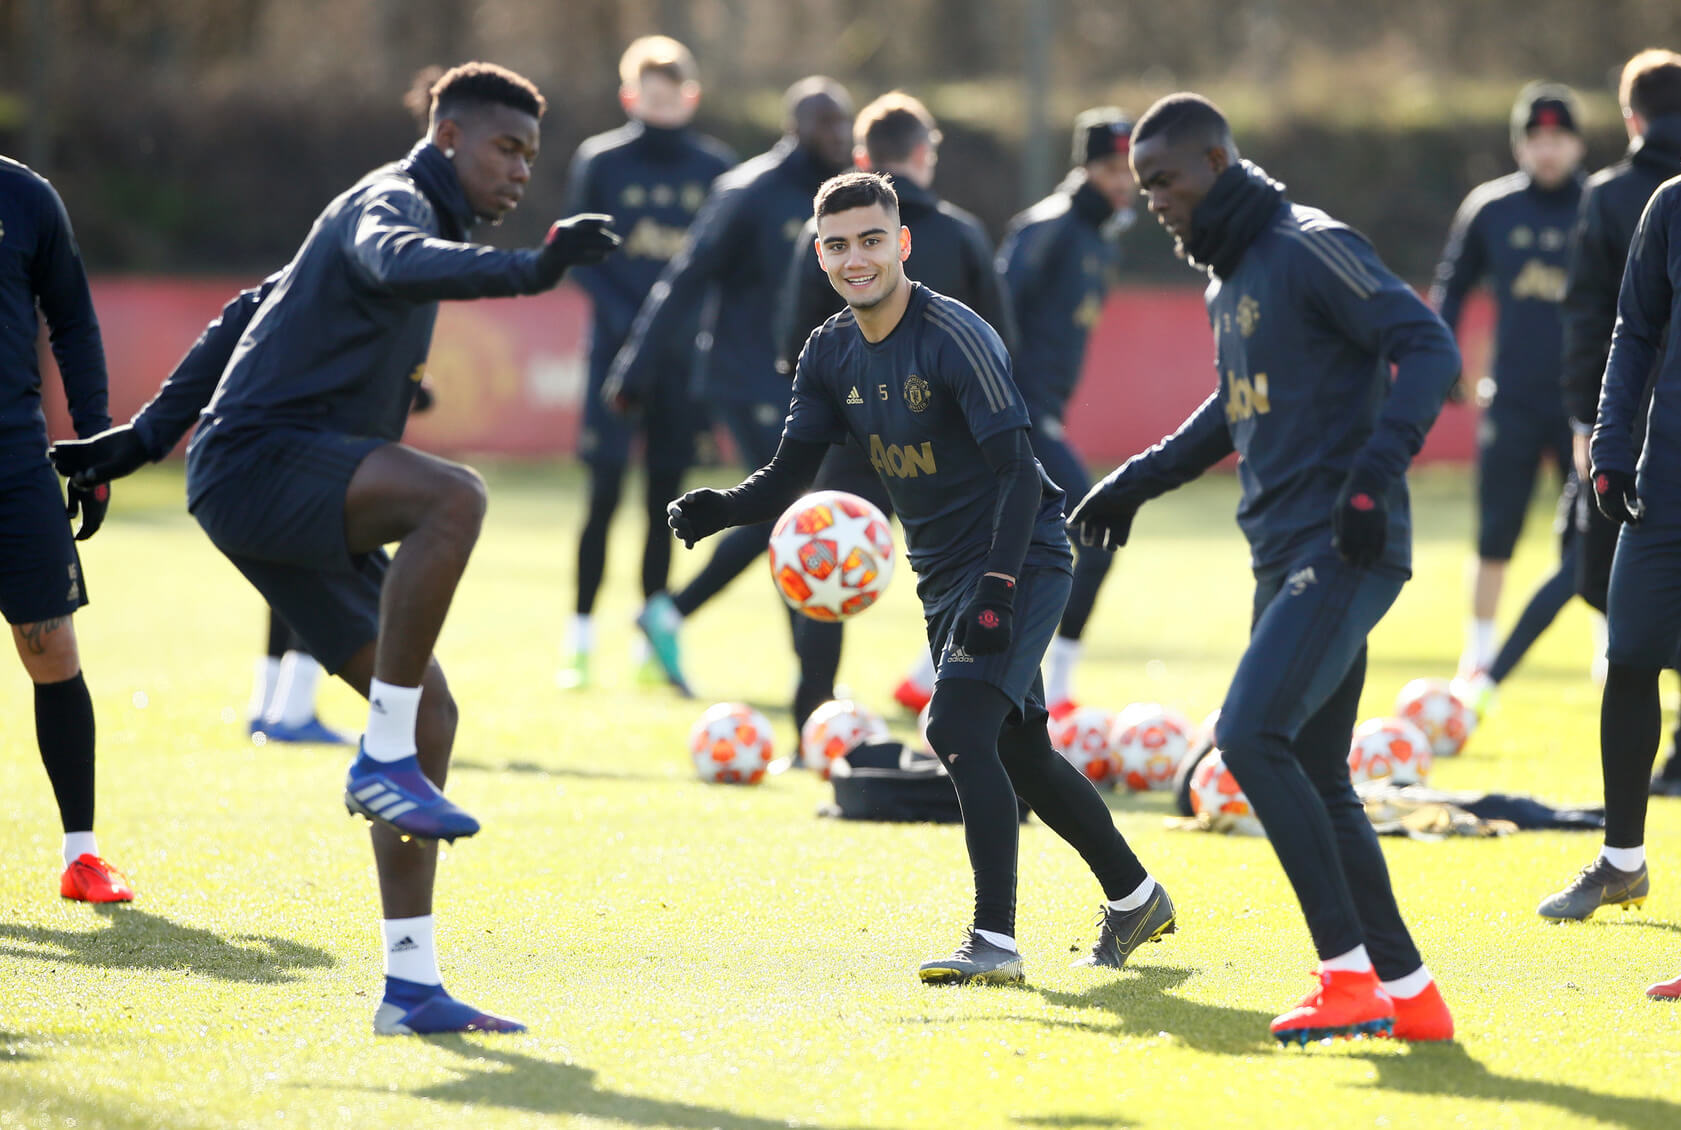 Paul Pogba, Andreas Pereira, Eric Bailly, Manchester United, England